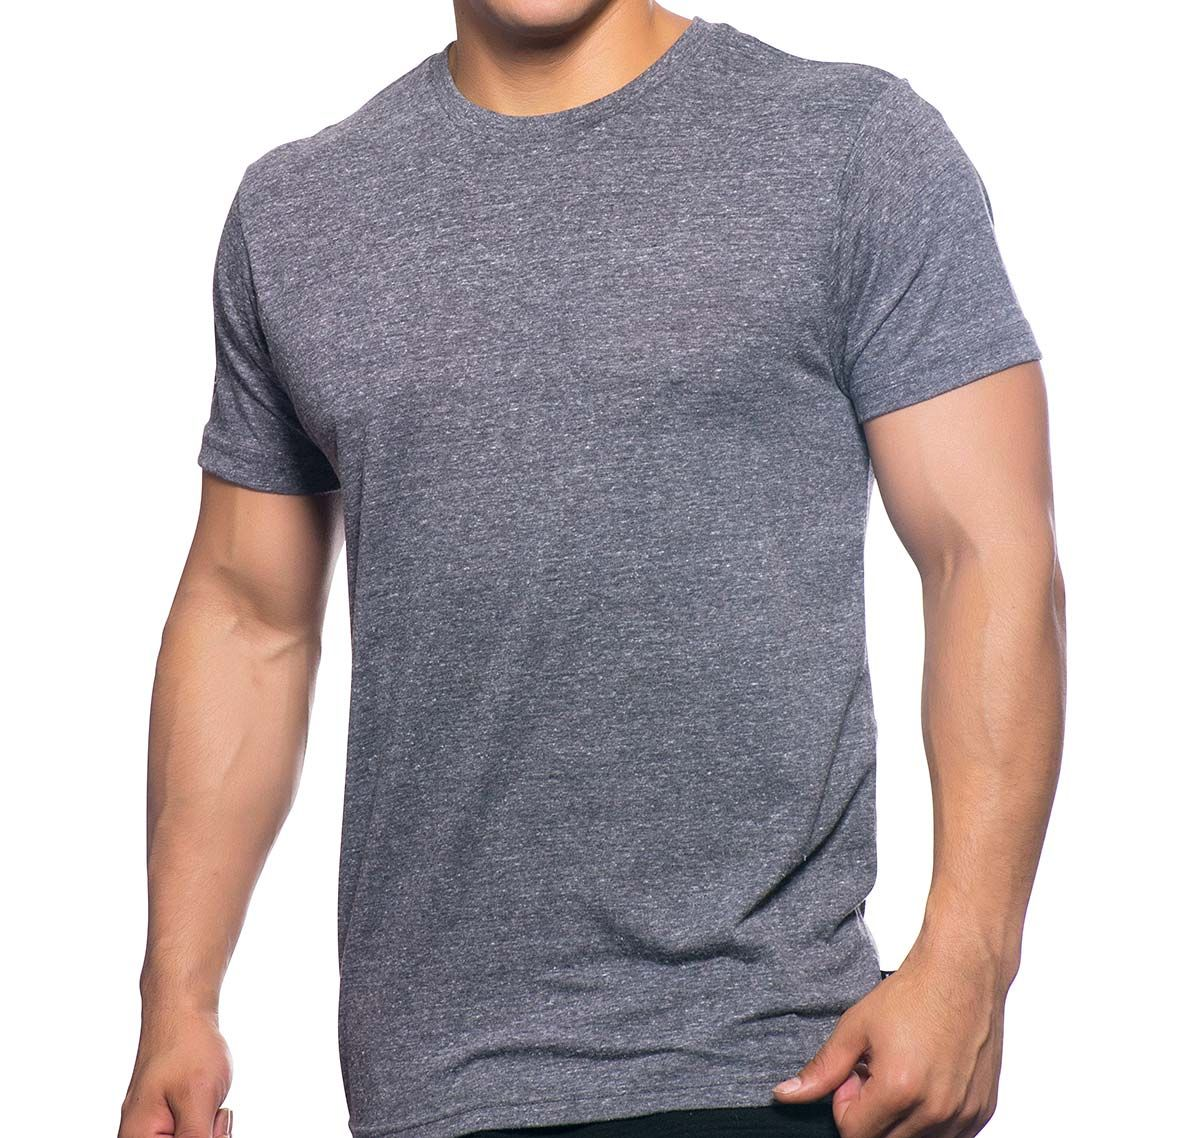 Andrew Christian T-Shirt HAPPY TAGLESS CREW NECK TEE 10165, vintage grau